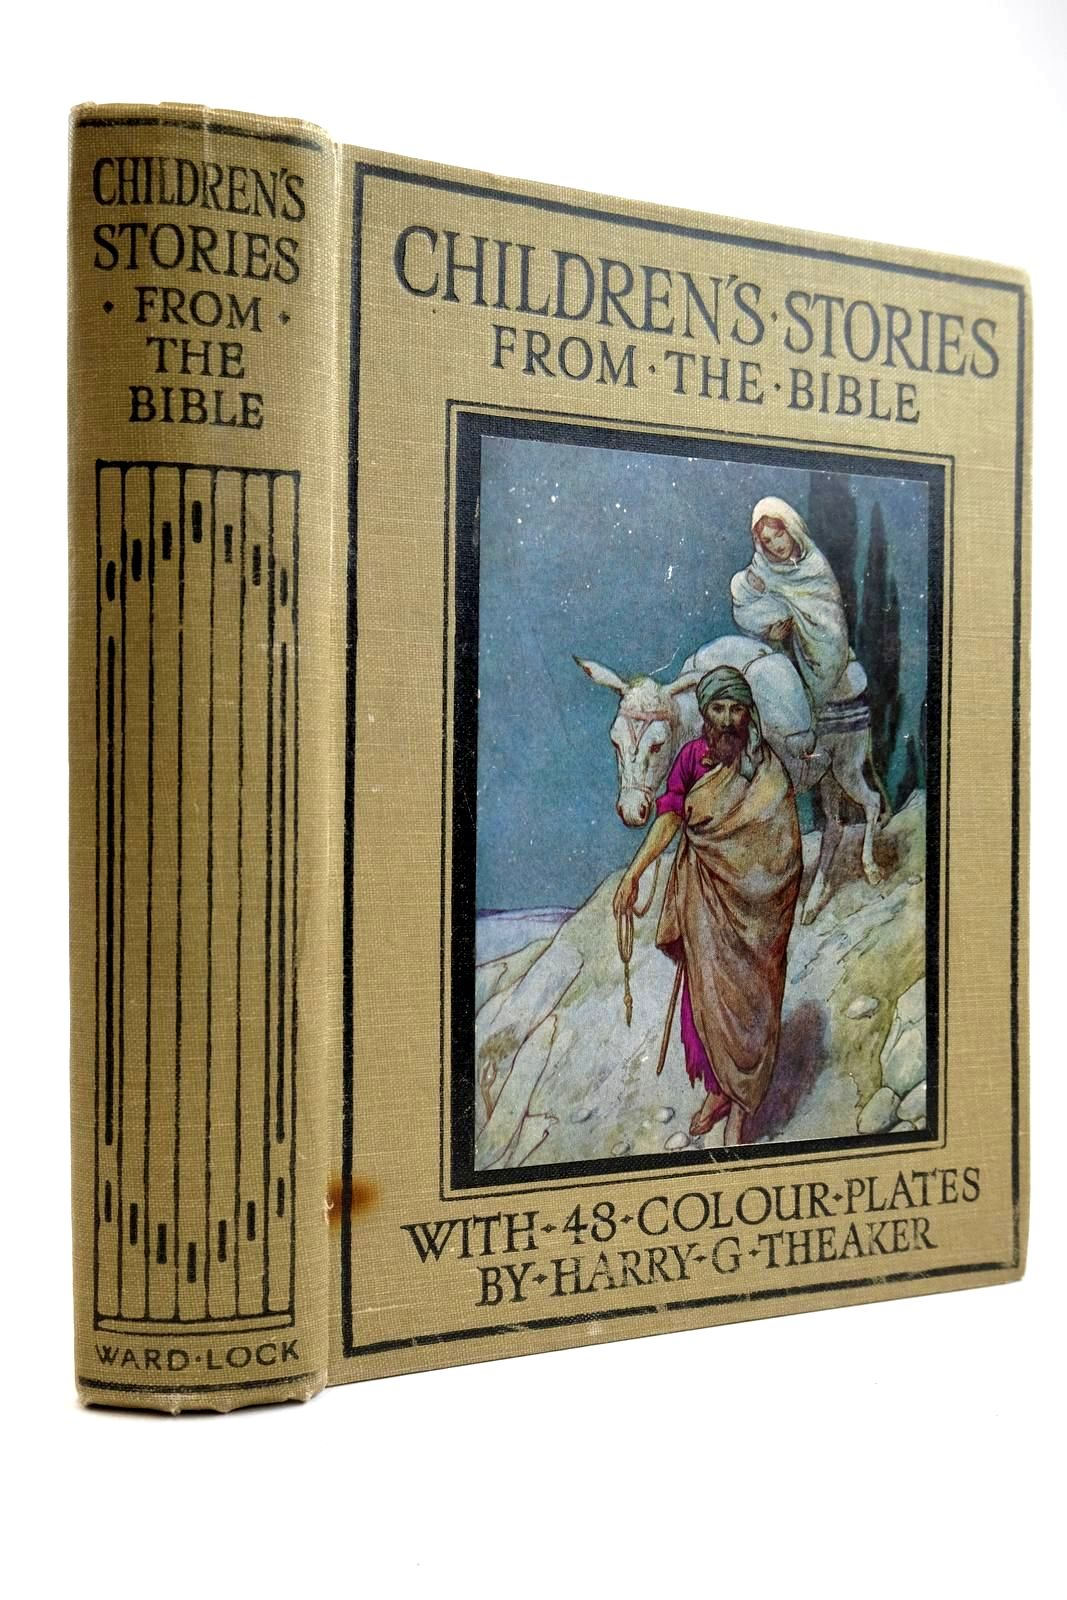 Photo of CHILDREN'S STORIES FROM THE BIBLE written by Winder, Blanche illustrated by Theaker, Harry published by Ward Lock & Co Ltd. (STOCK CODE: 2133987)  for sale by Stella & Rose's Books